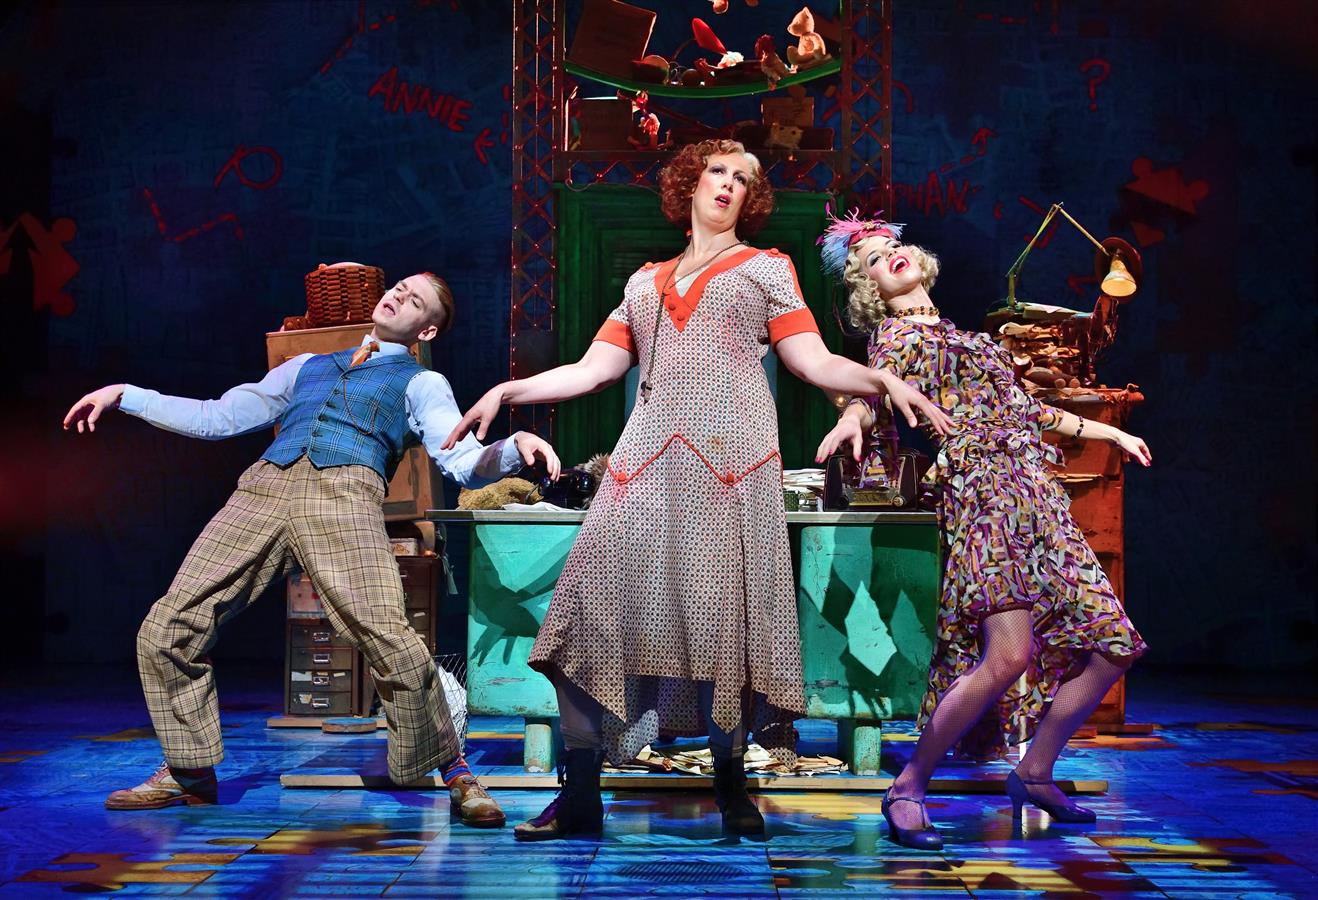 annie musical theatre piccadilly production miranda hart check twitcelebgossip go